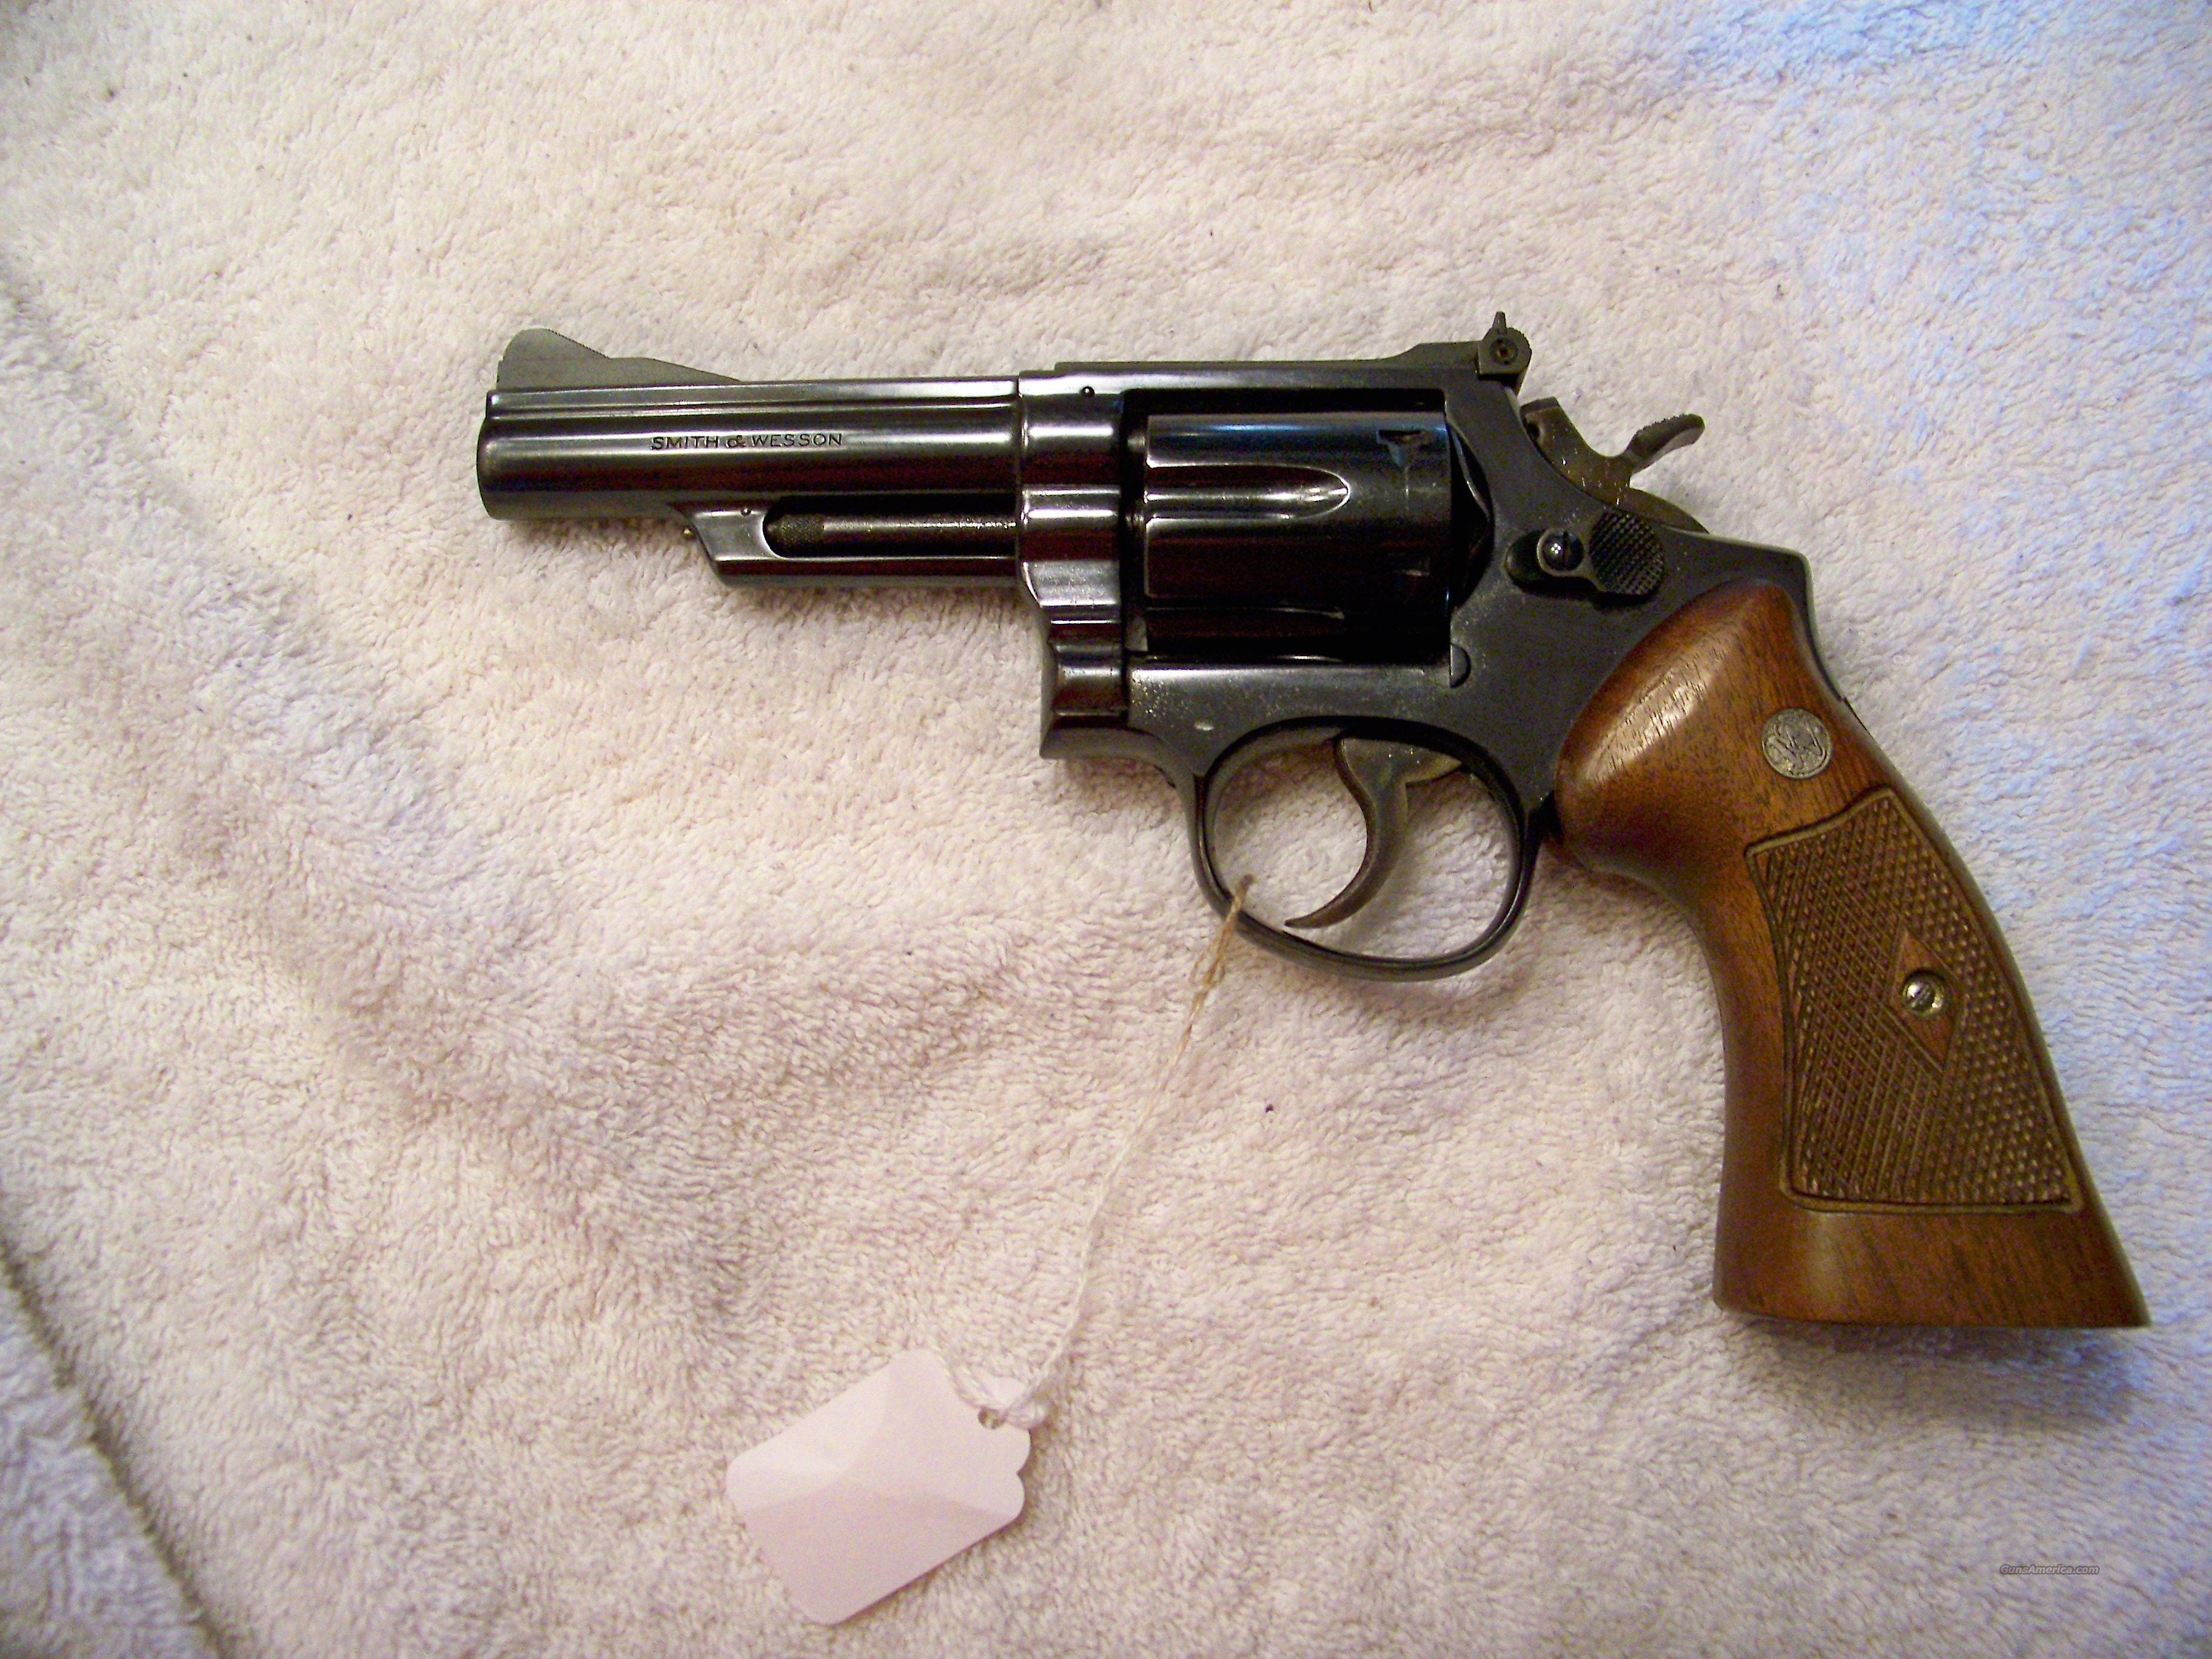 SMITH & WESSON COMBAT MAGNUM 357 MAG  Guns > Pistols > Smith & Wesson Revolvers > Full Frame Revolver